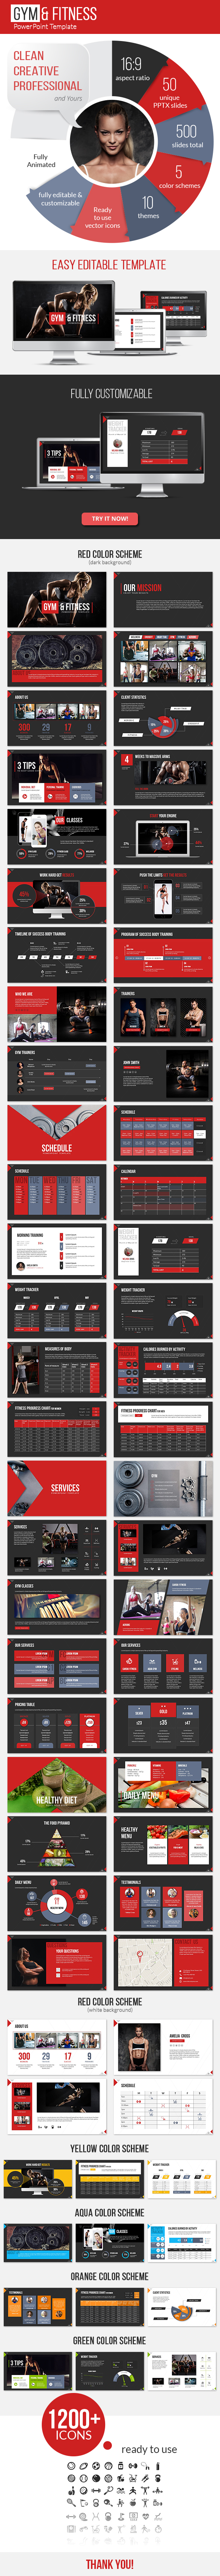 Gym and Fitness PowerPoint Presentation Template - Business PowerPoint Templates